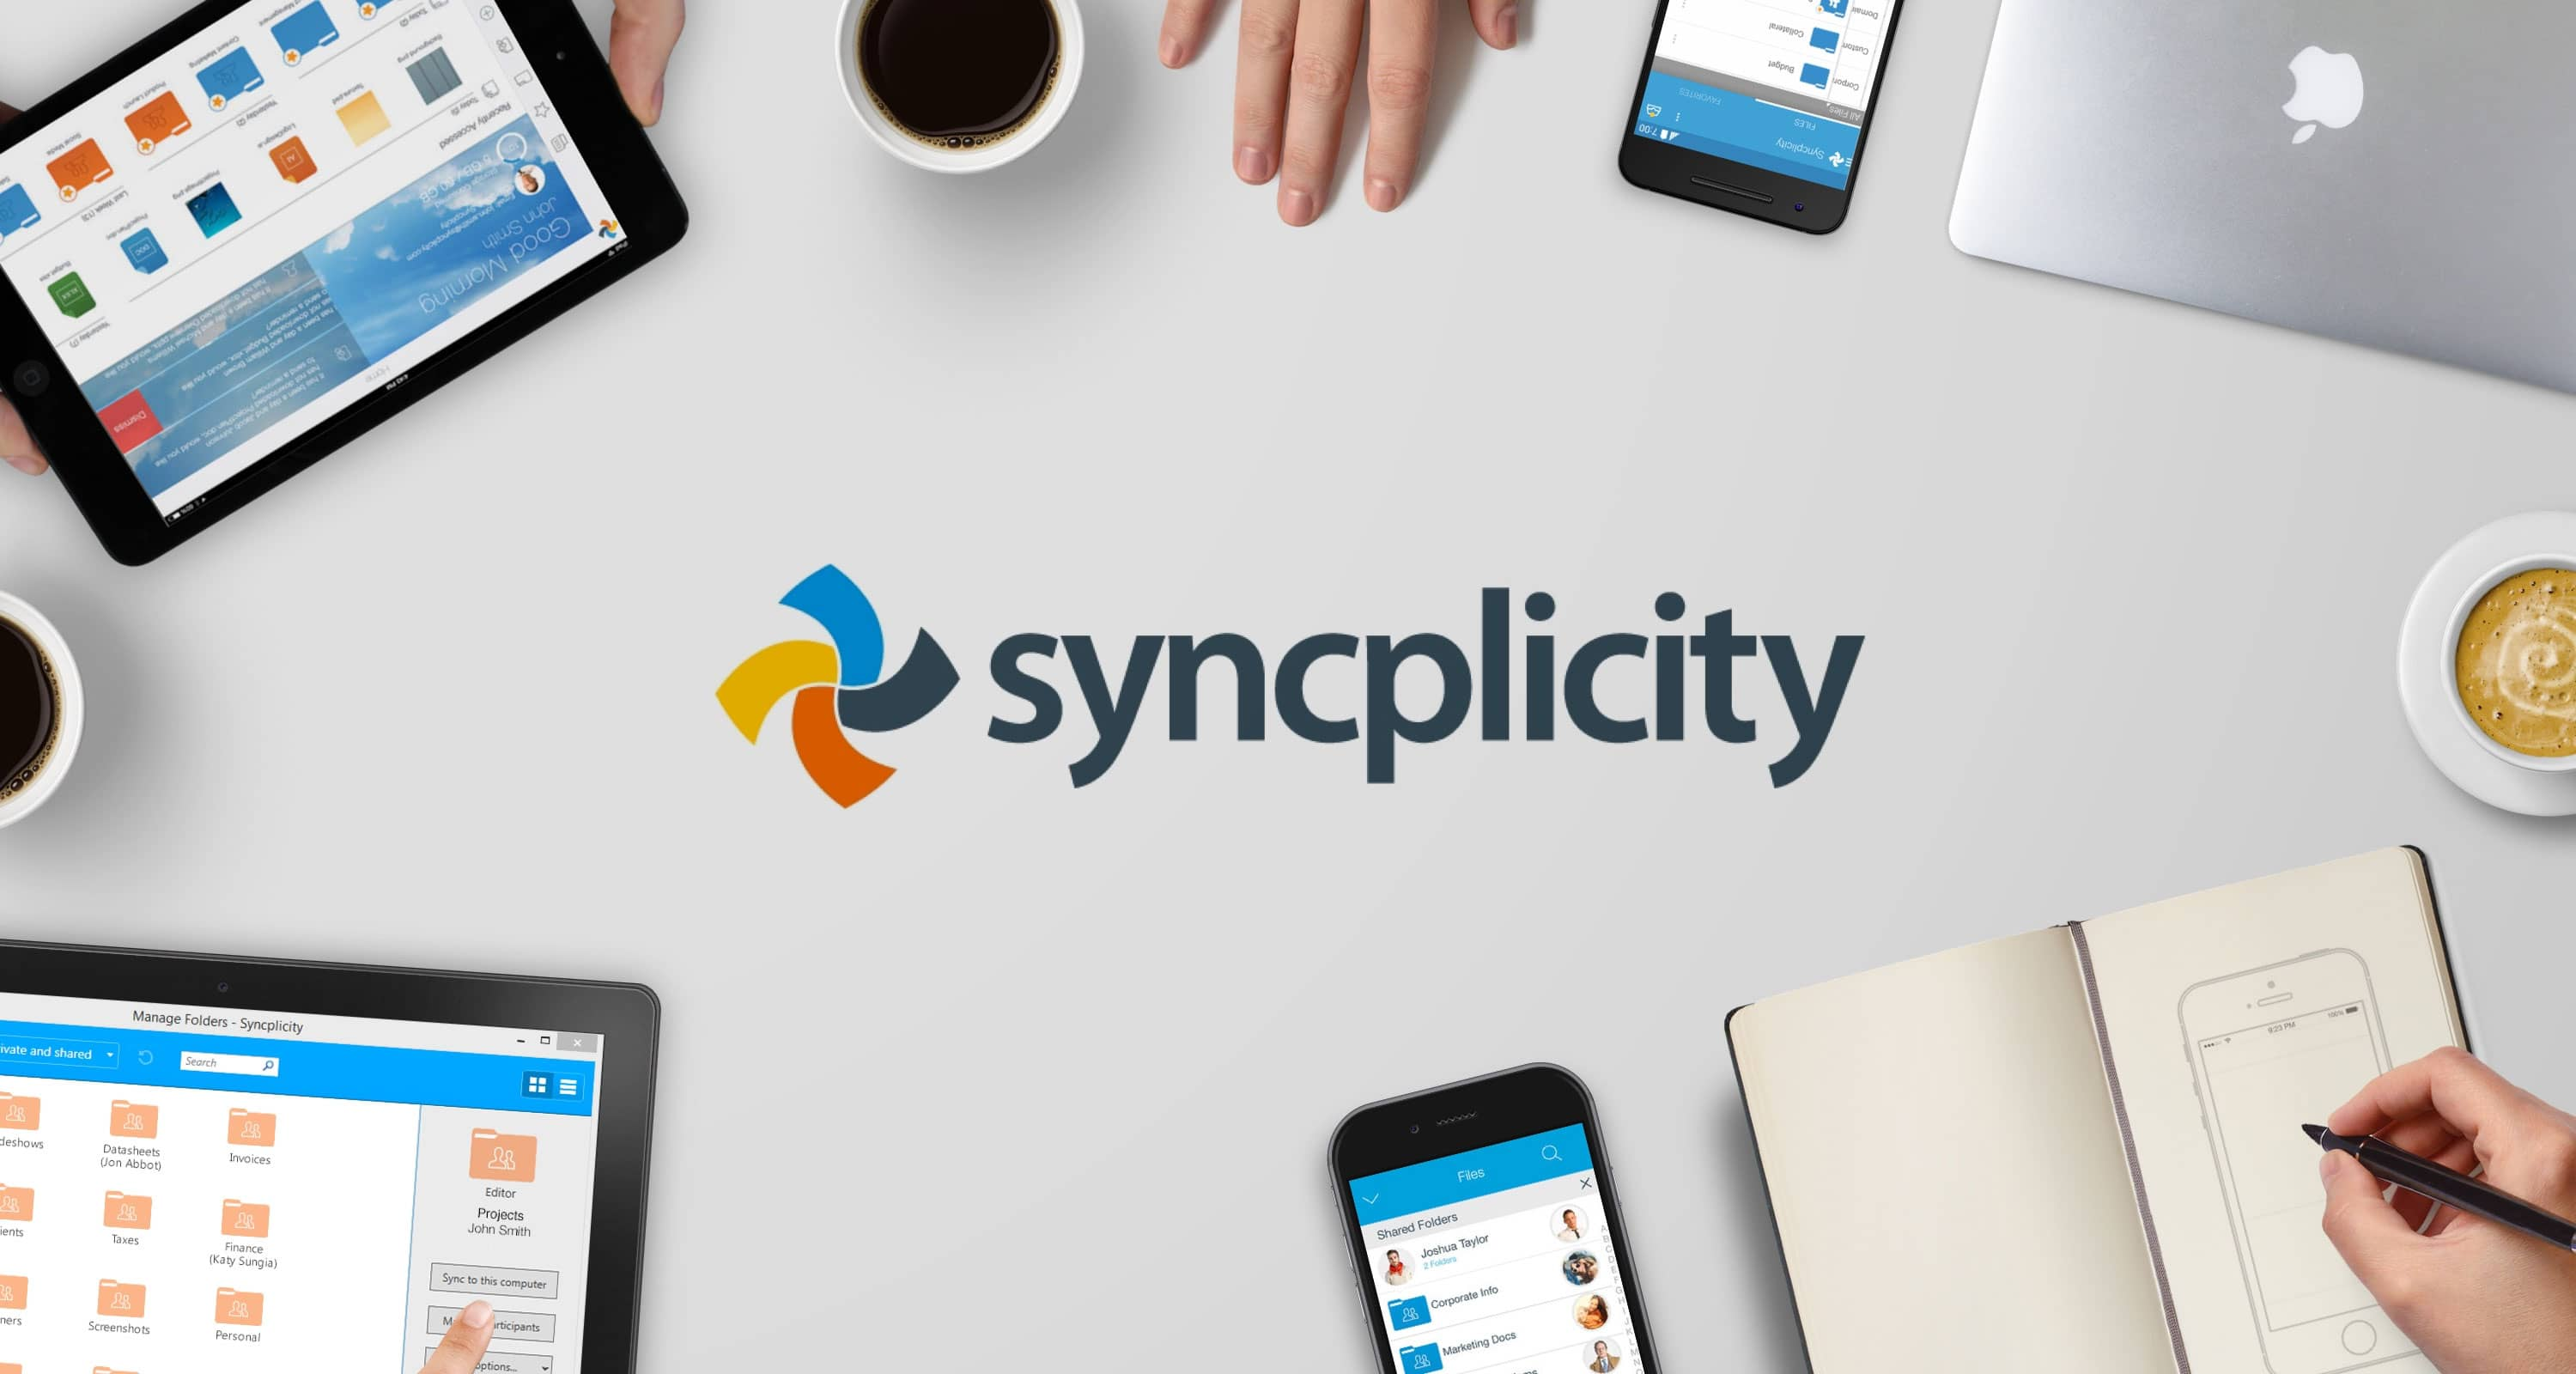 The Vision for Syncplicity